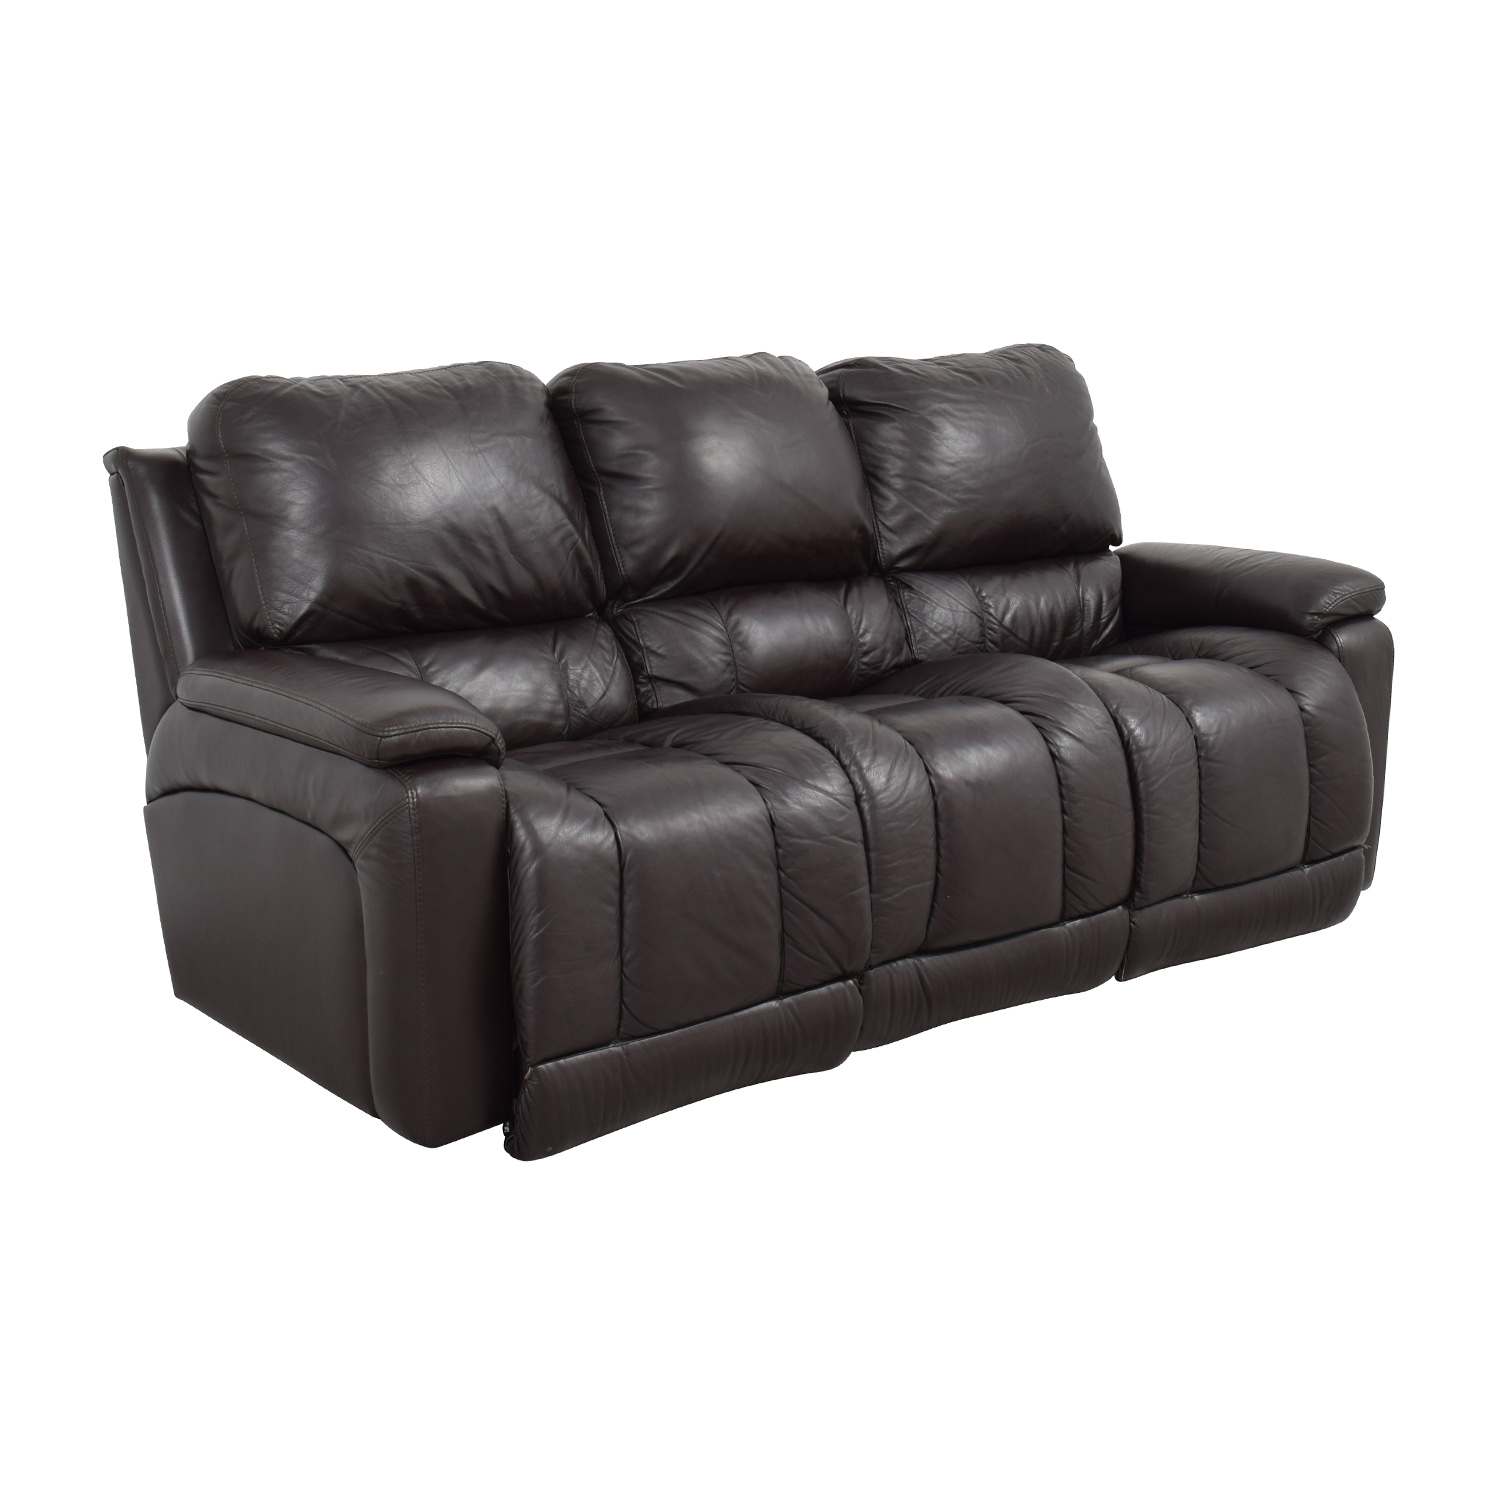 La Z Boy Leather Reclining Sofa Lazy Boy Double Recliner